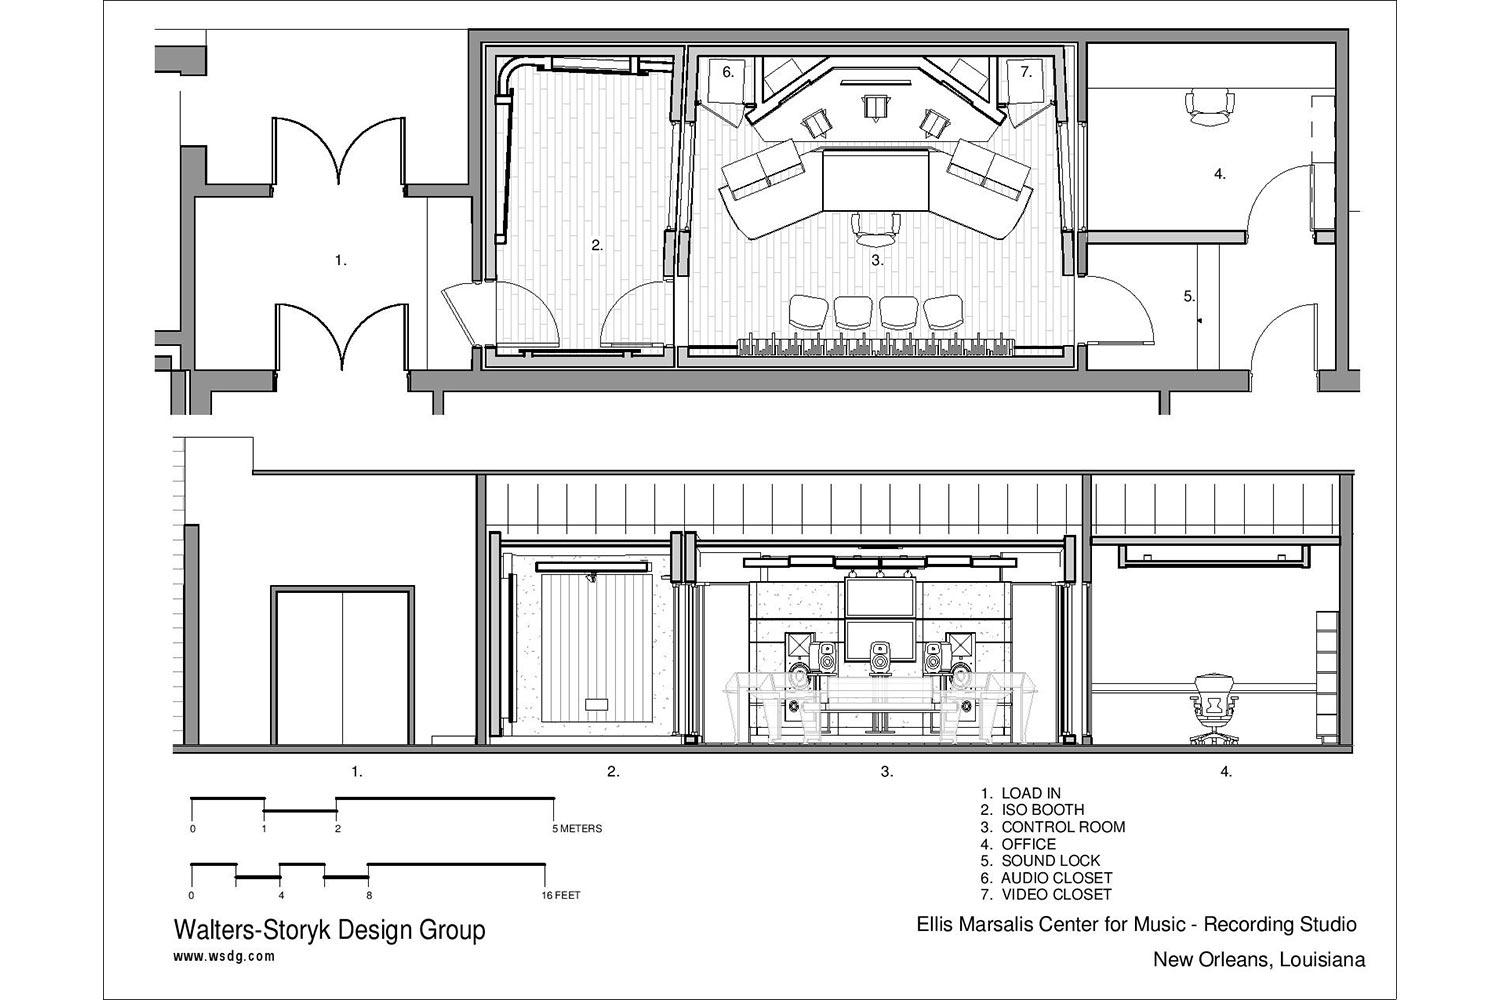 Recording studio floor plans architecture for Recording studio floor plans architecture